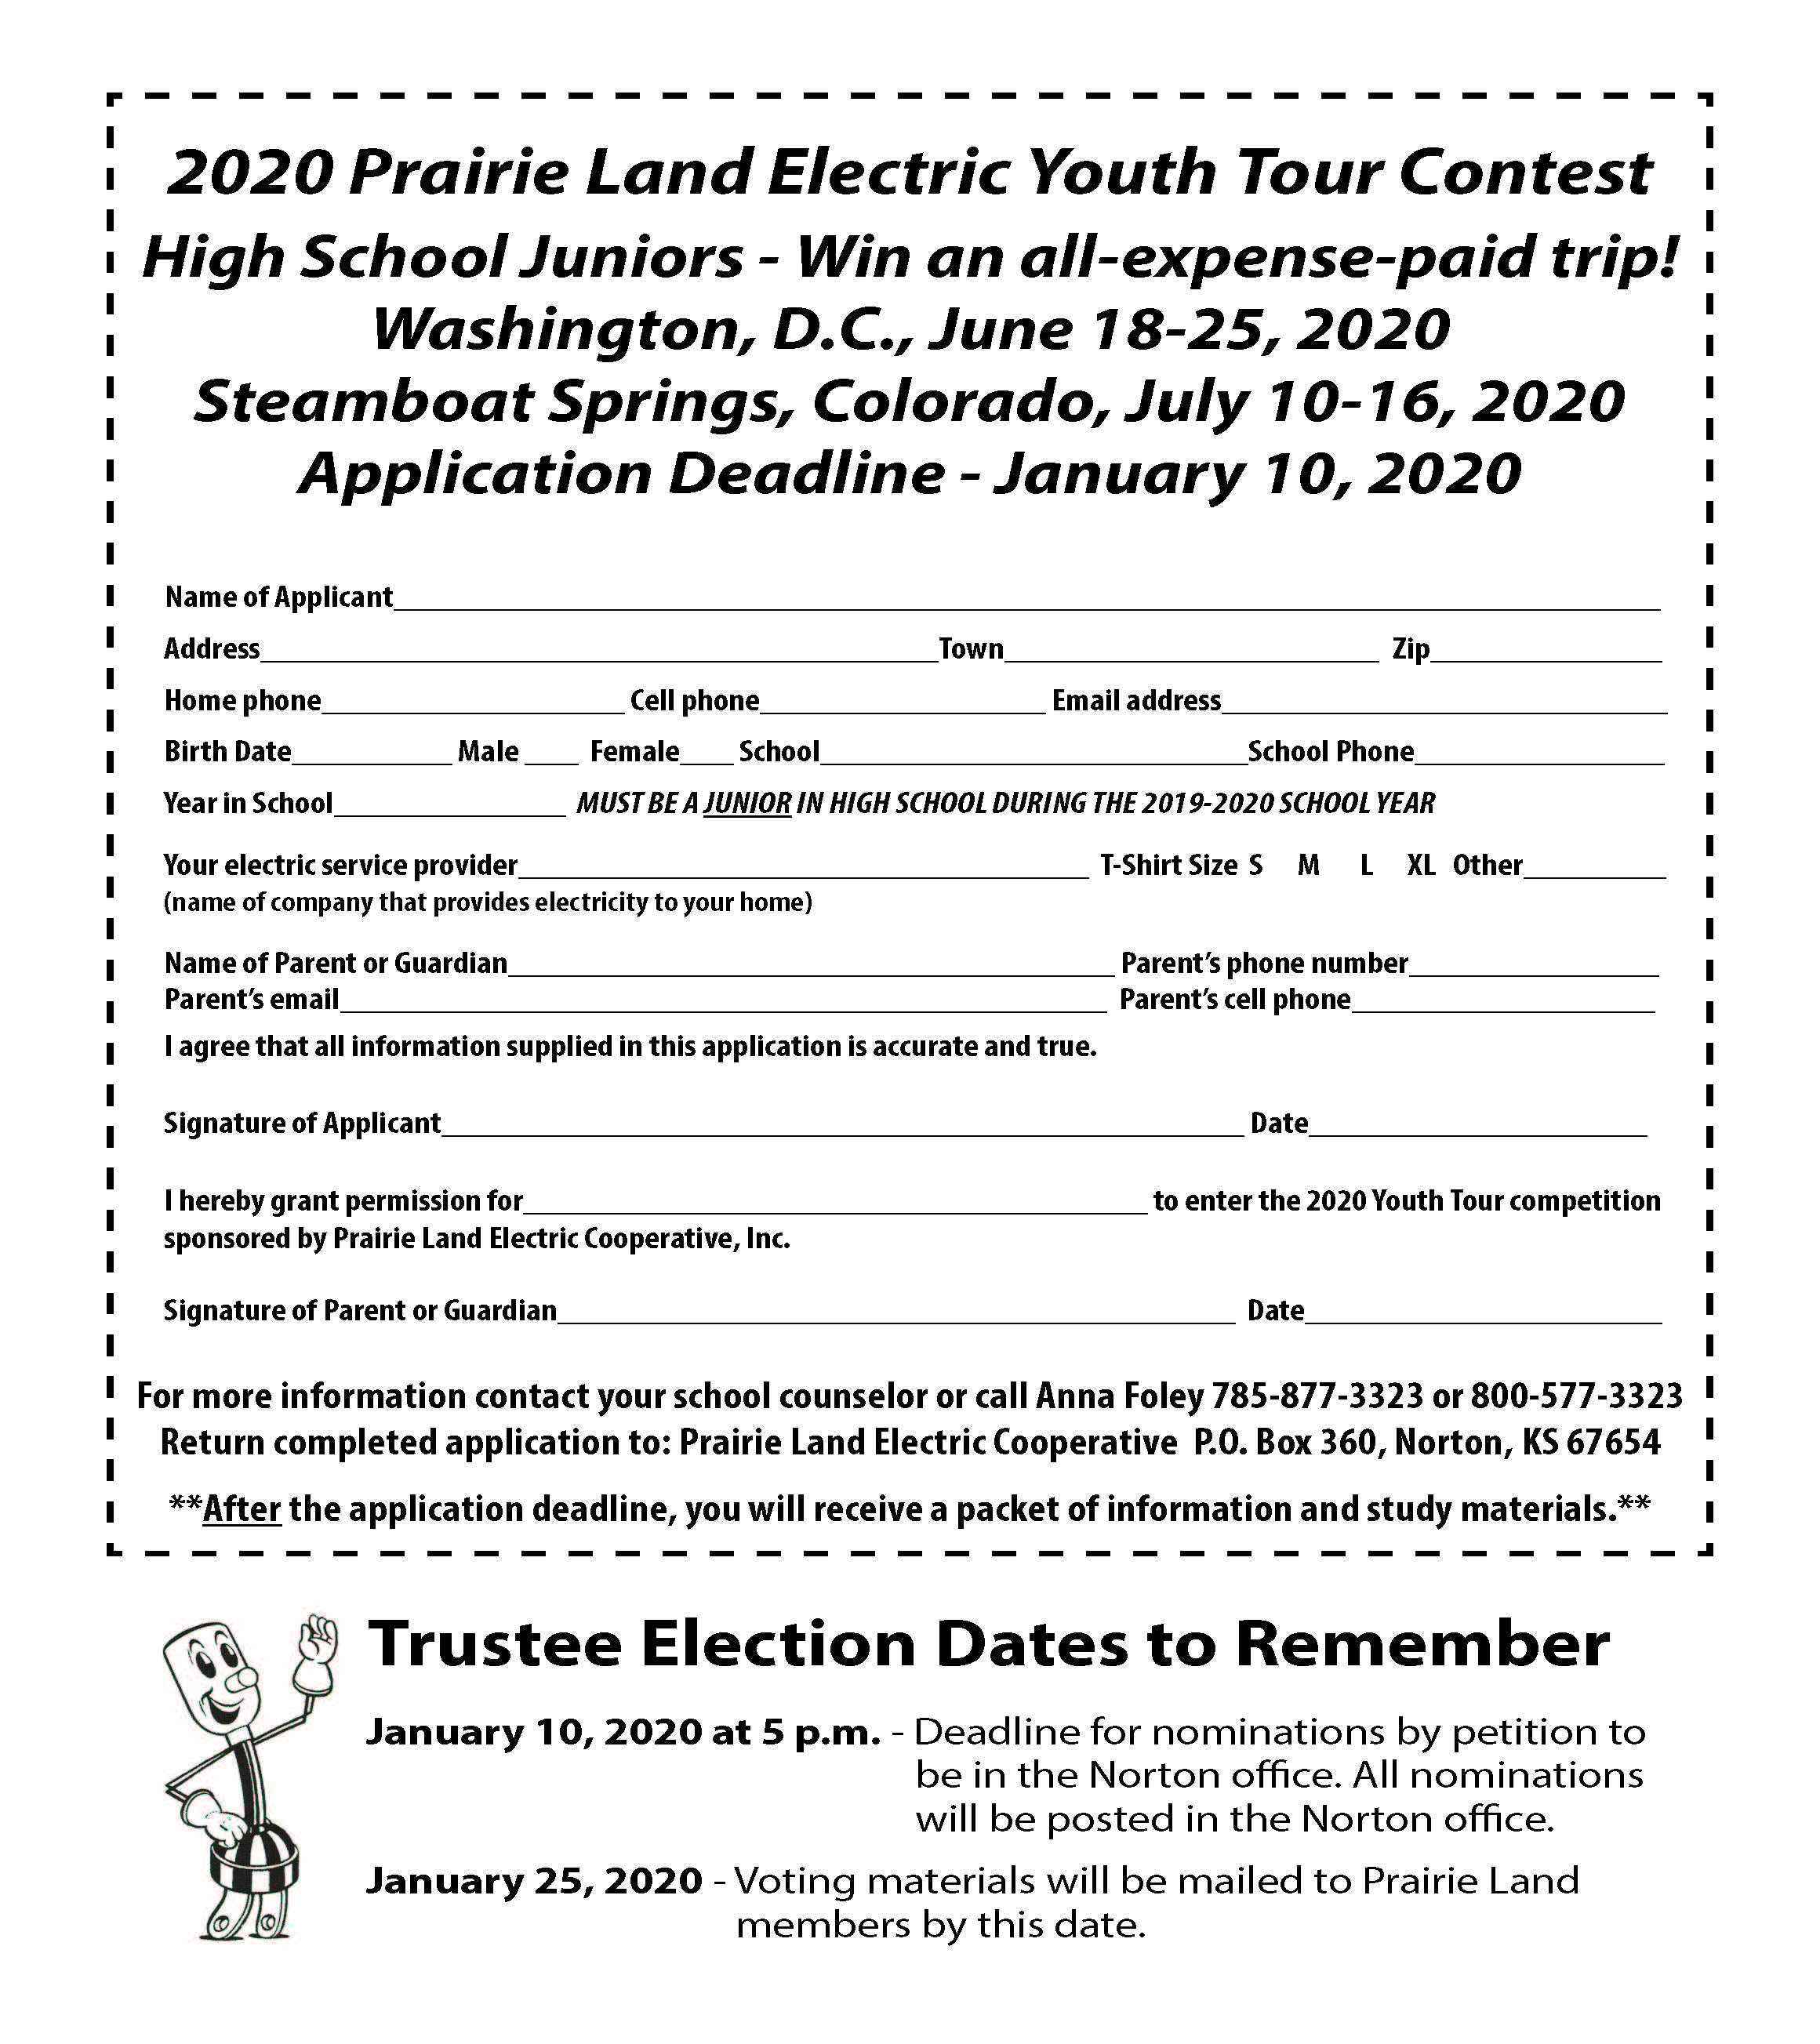 December Youth Tour Trustee Election